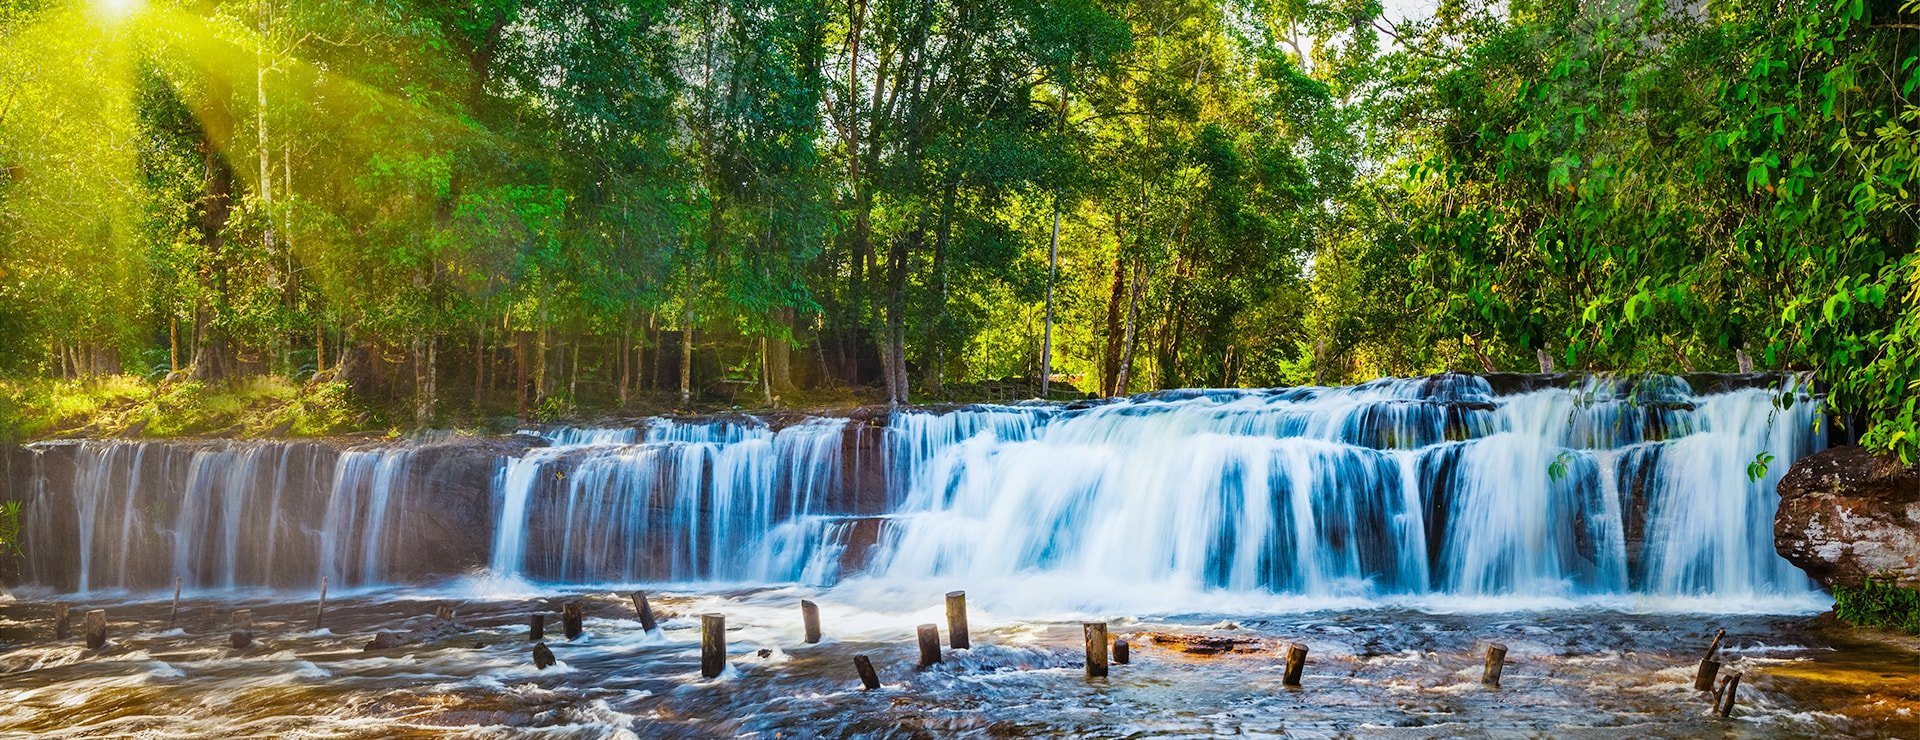 Tropical waterfall Phnom Kulen during sunrise, Cambodia